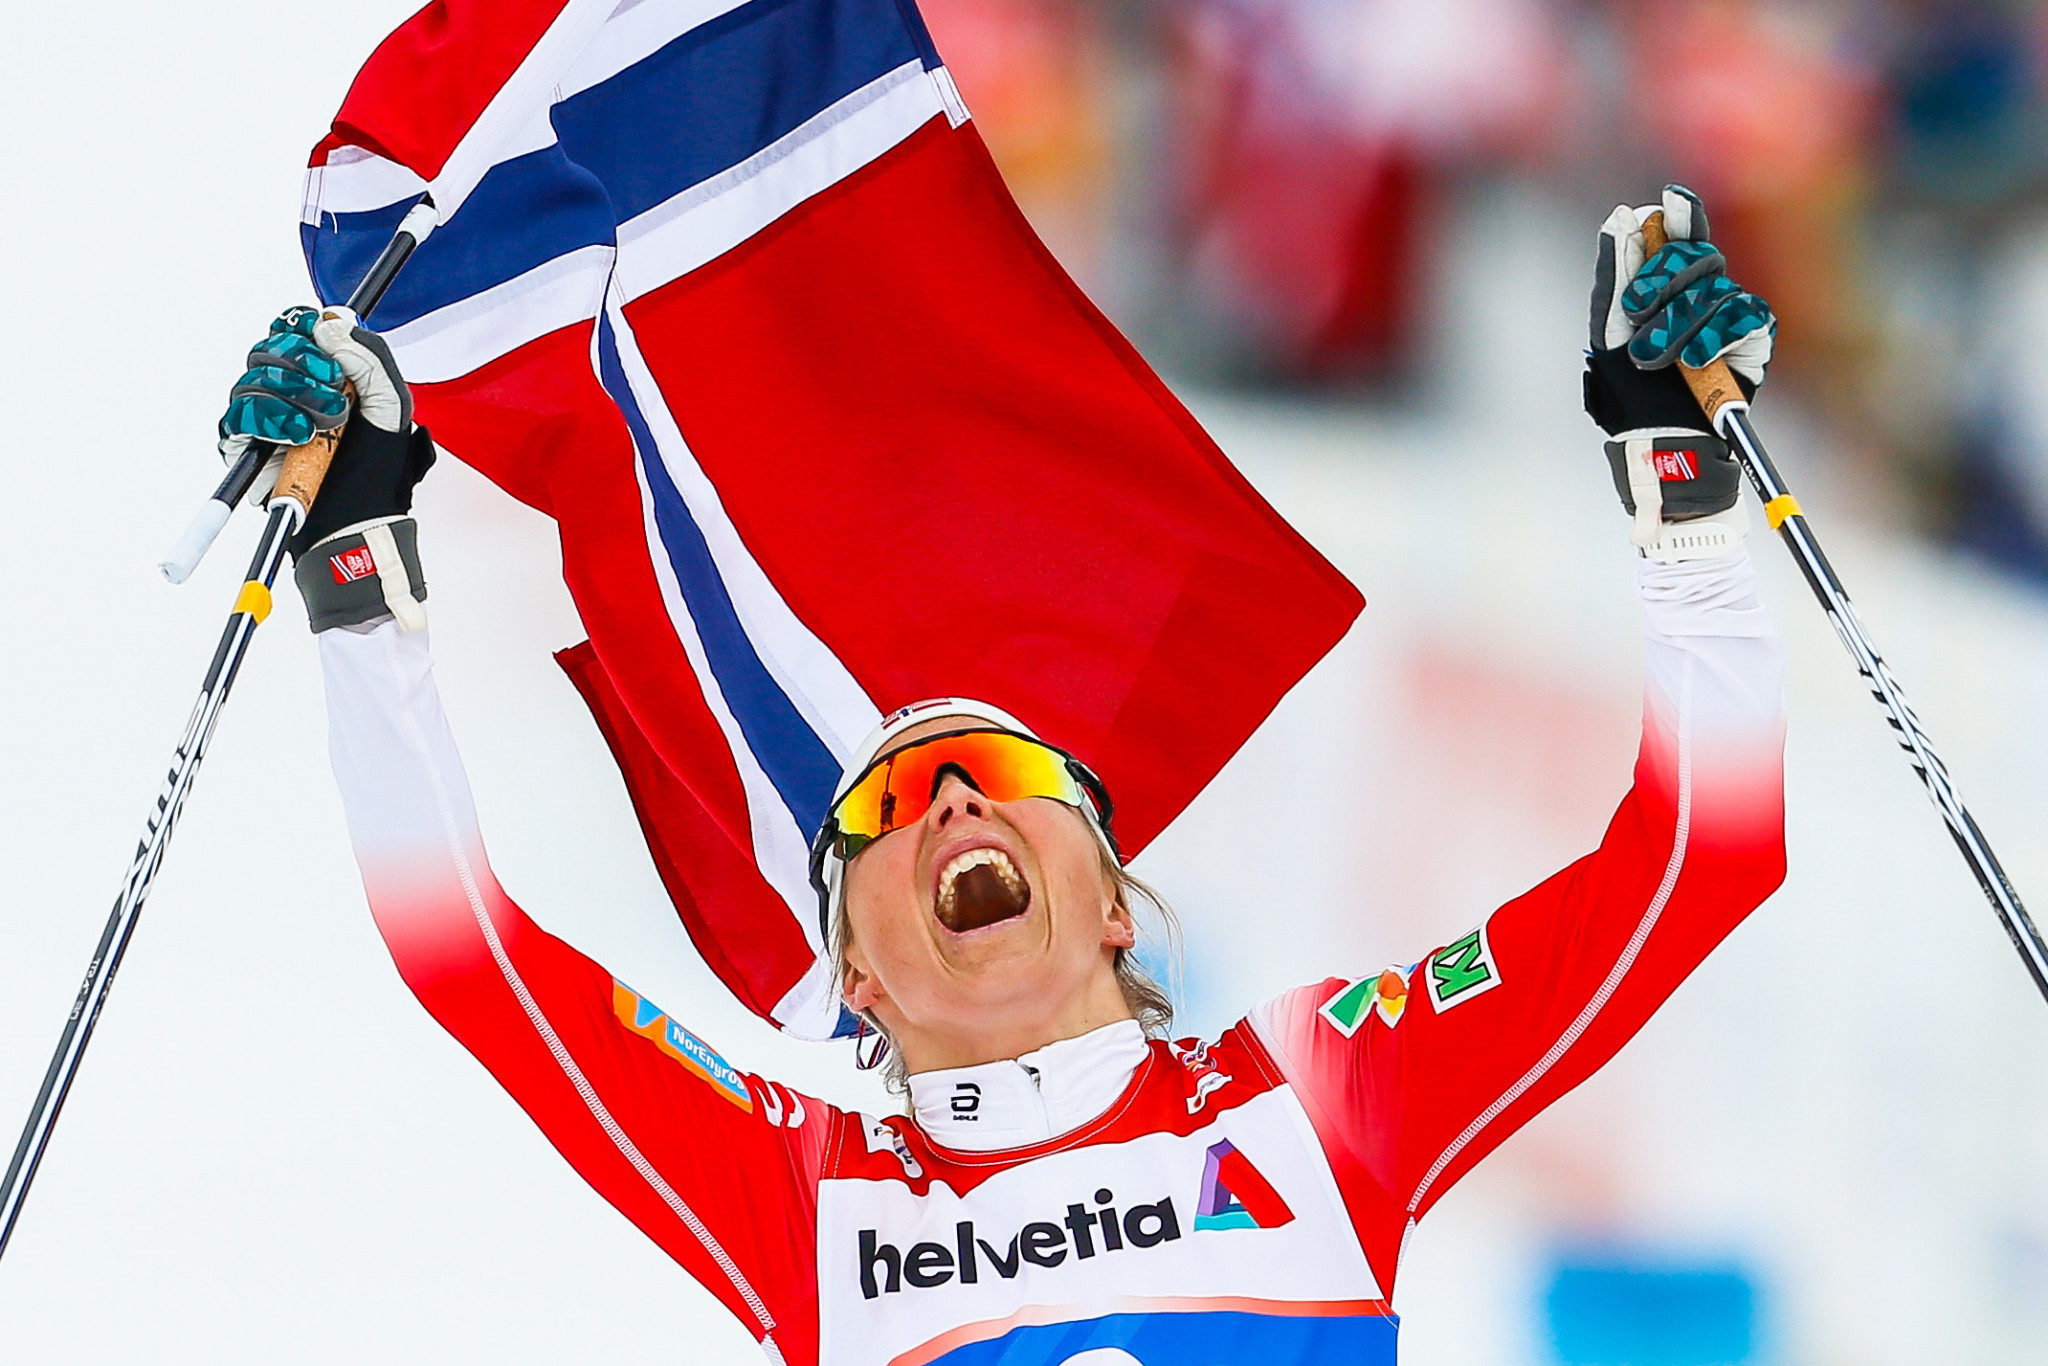 Johaug earns third title on successful day for Norway at FIS Nordic World Ski Championships